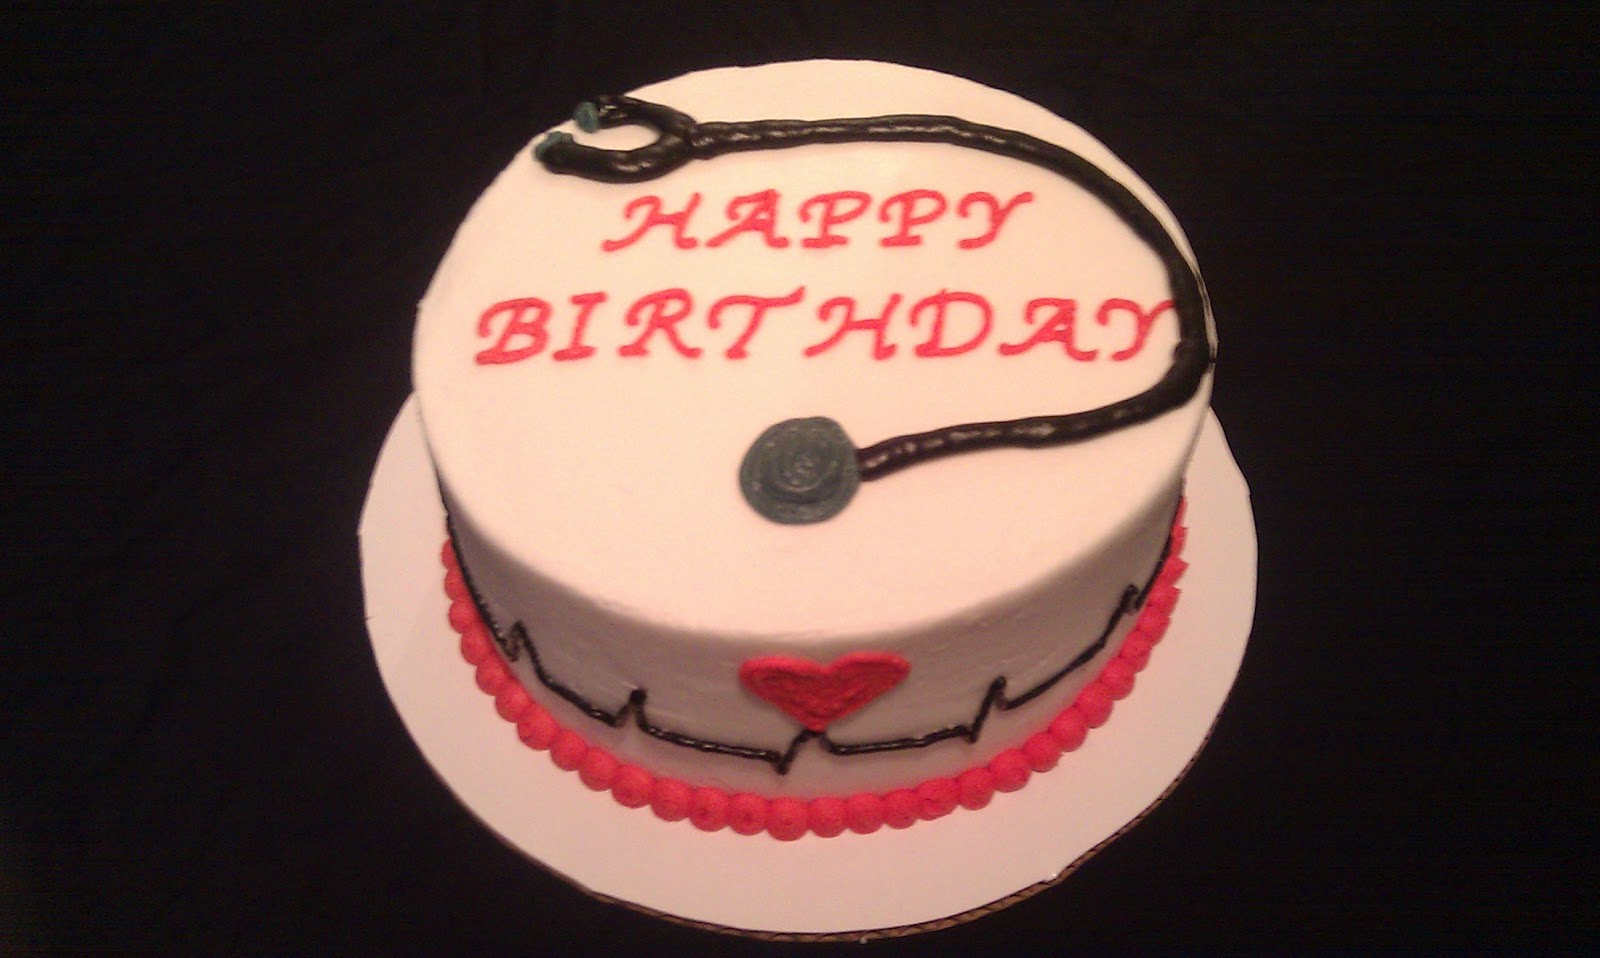 Birthday Cake For Doctor Brother Image Inspiration of Cake and